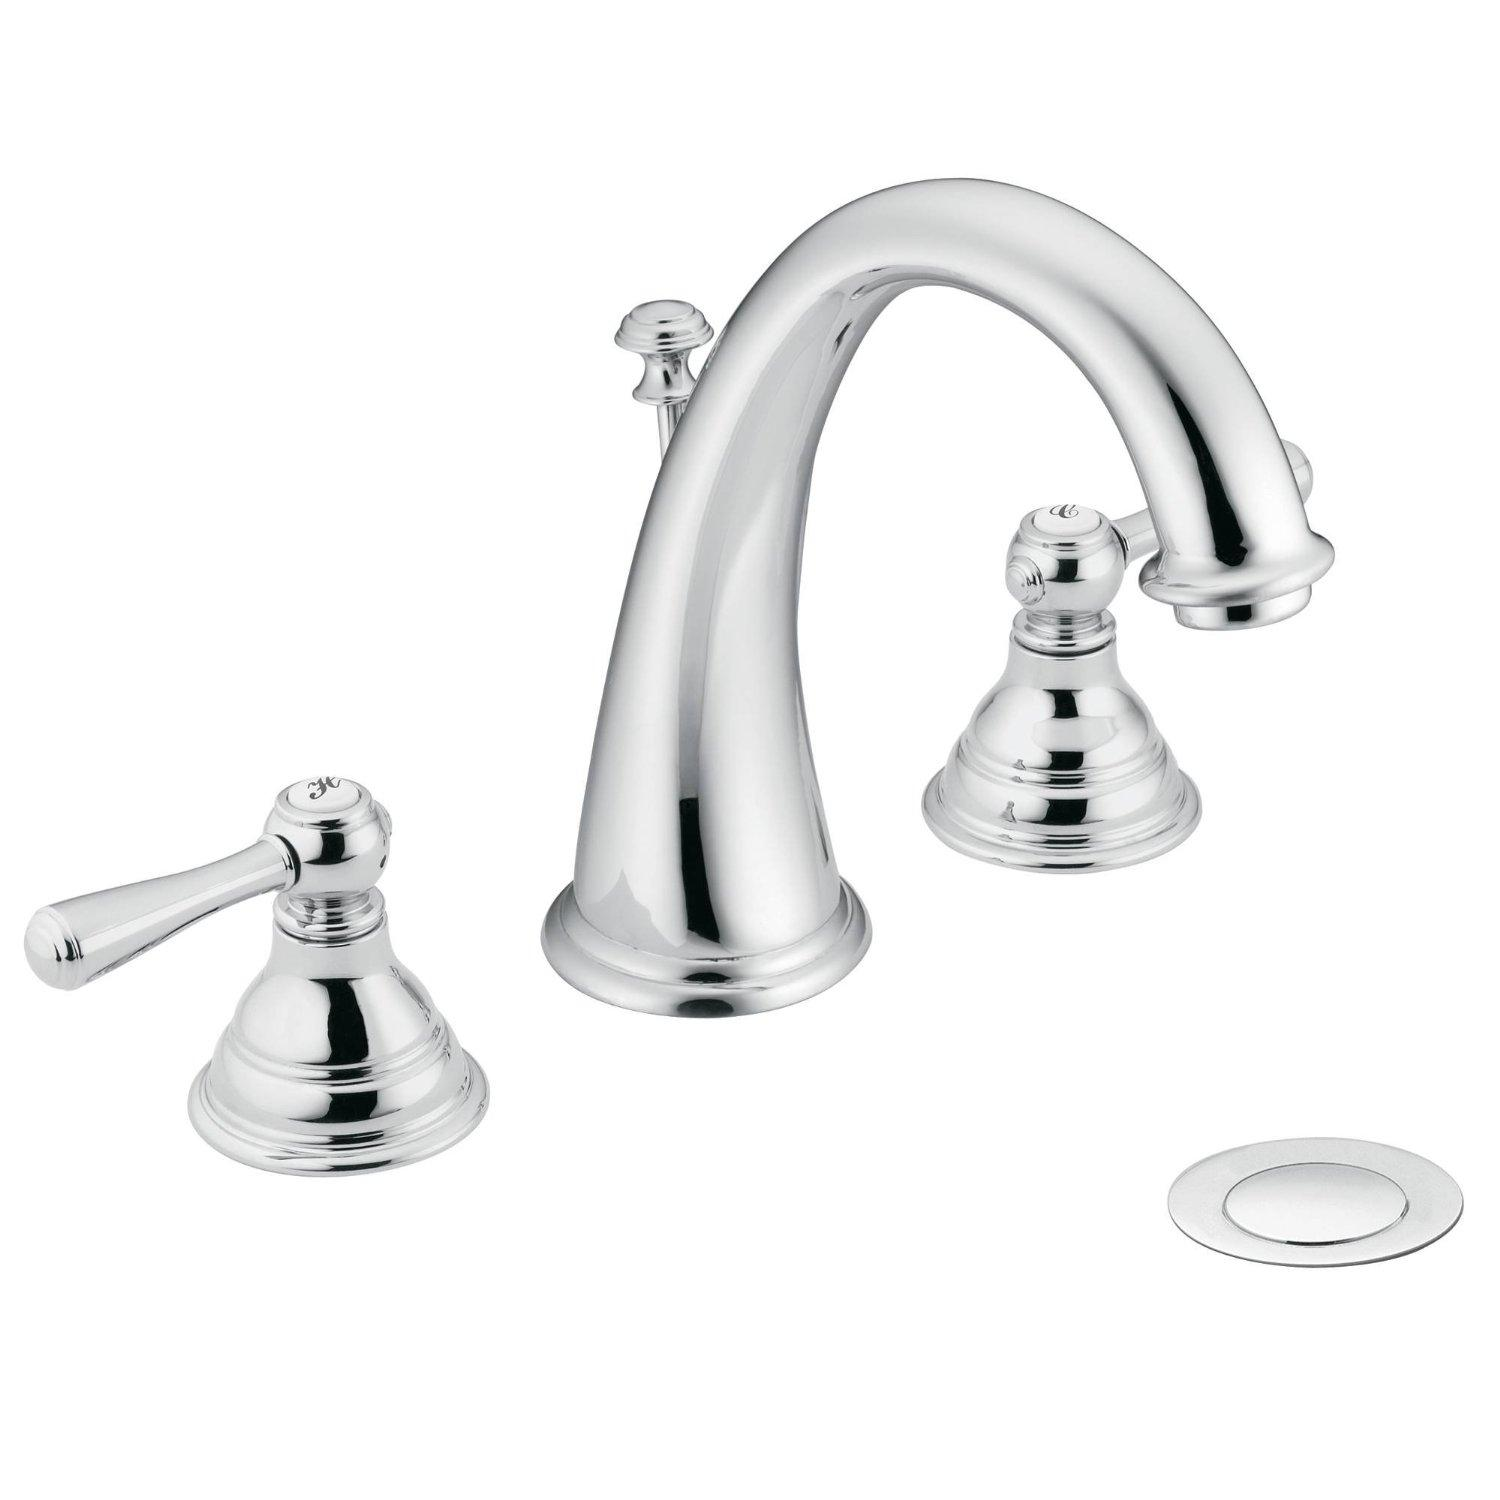 low for less faucets rothbury chrome two home overstock subcat arc faucet moen brand handle bathroom garden